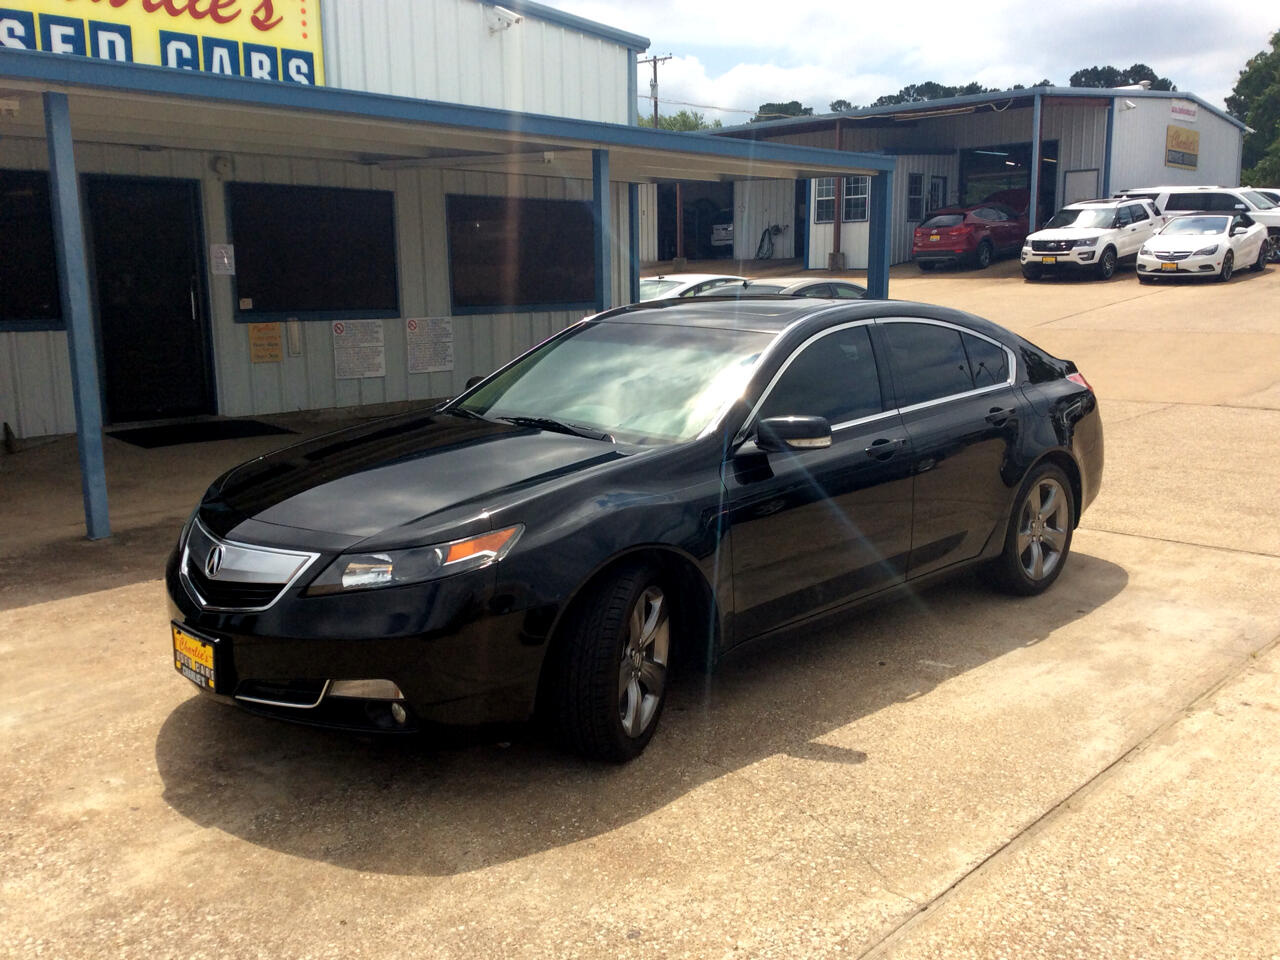 2014 Acura TL 4 Dr Sedan Advance